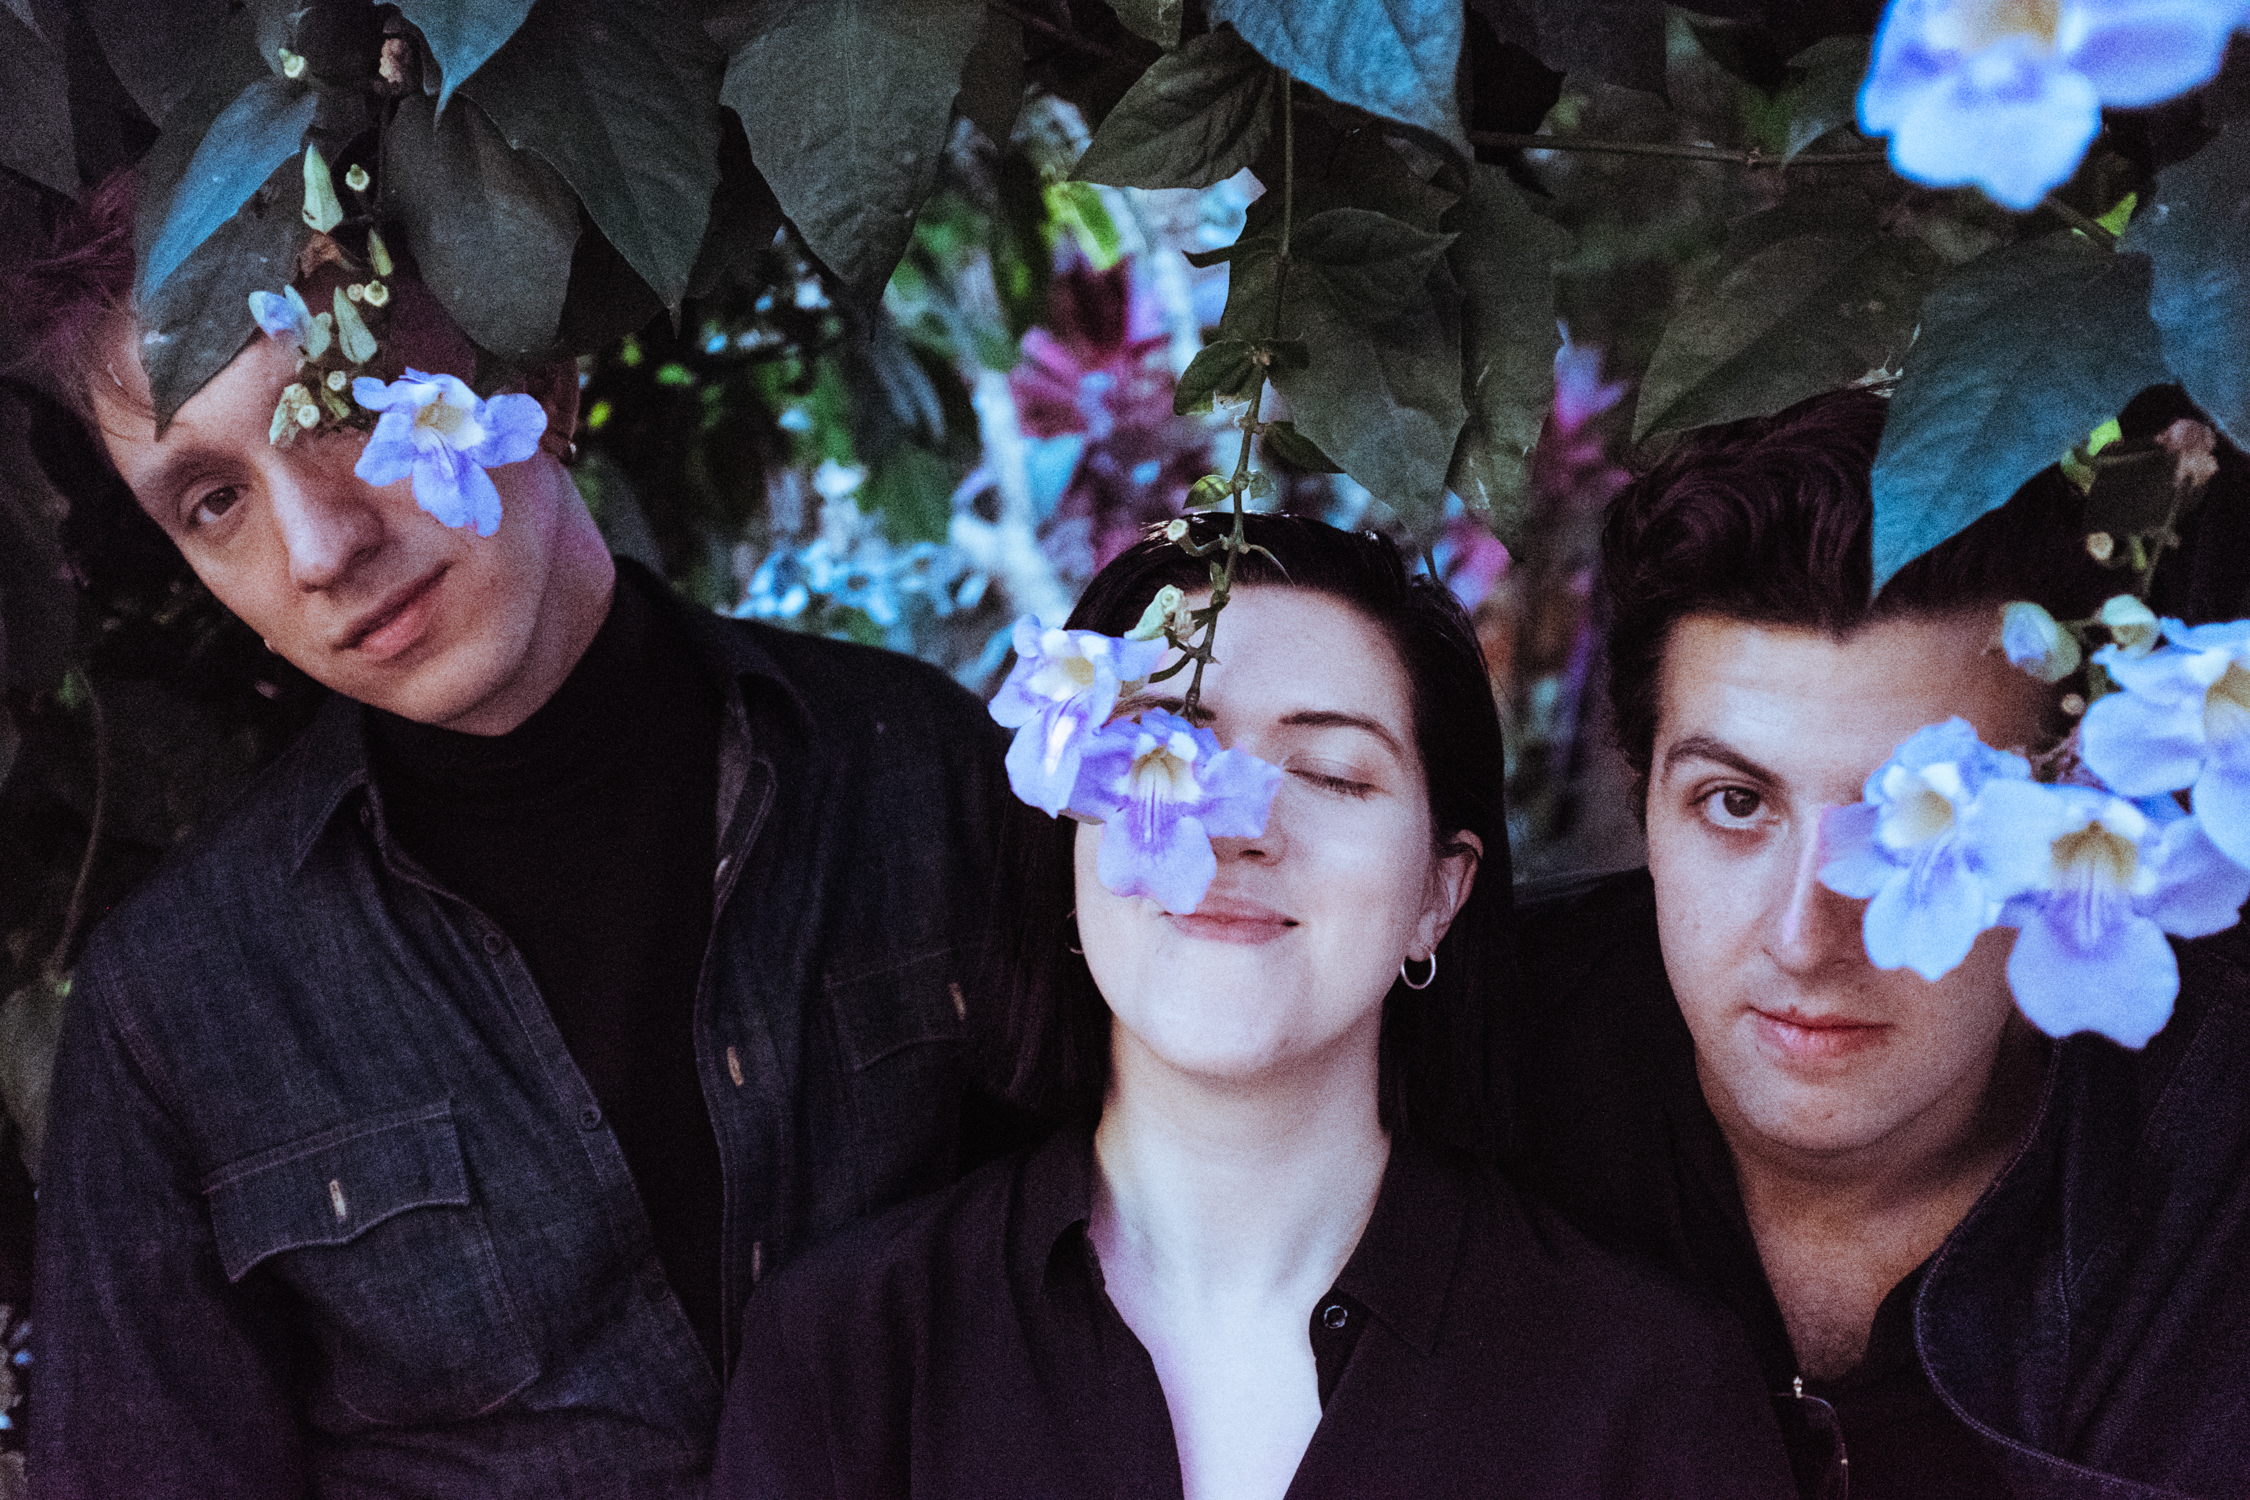 thexx-Aus-Asia-Summer17-byronday3-LillieEiger-074.JPG